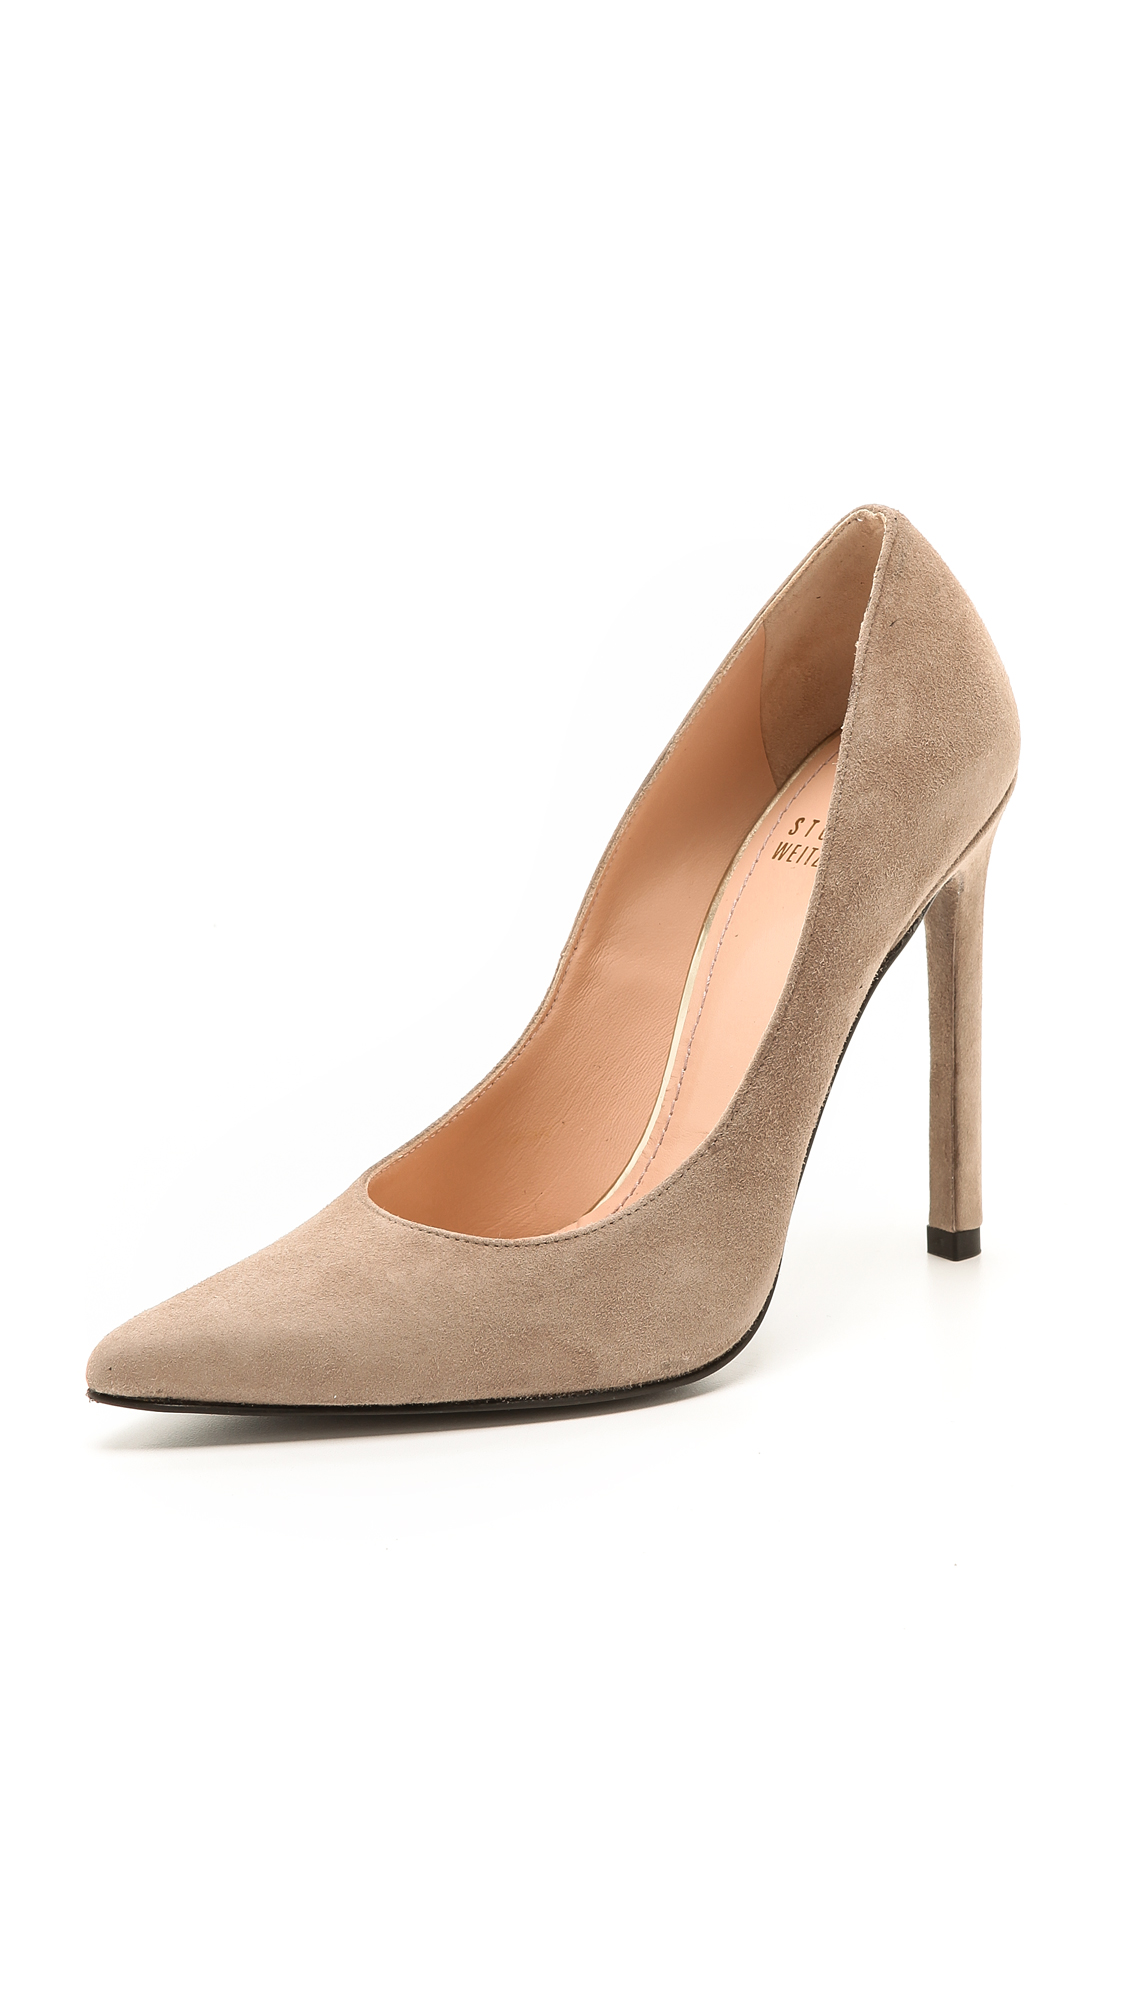 Stuart Weitzman Queen 110Mm Suede Pumps In Haze